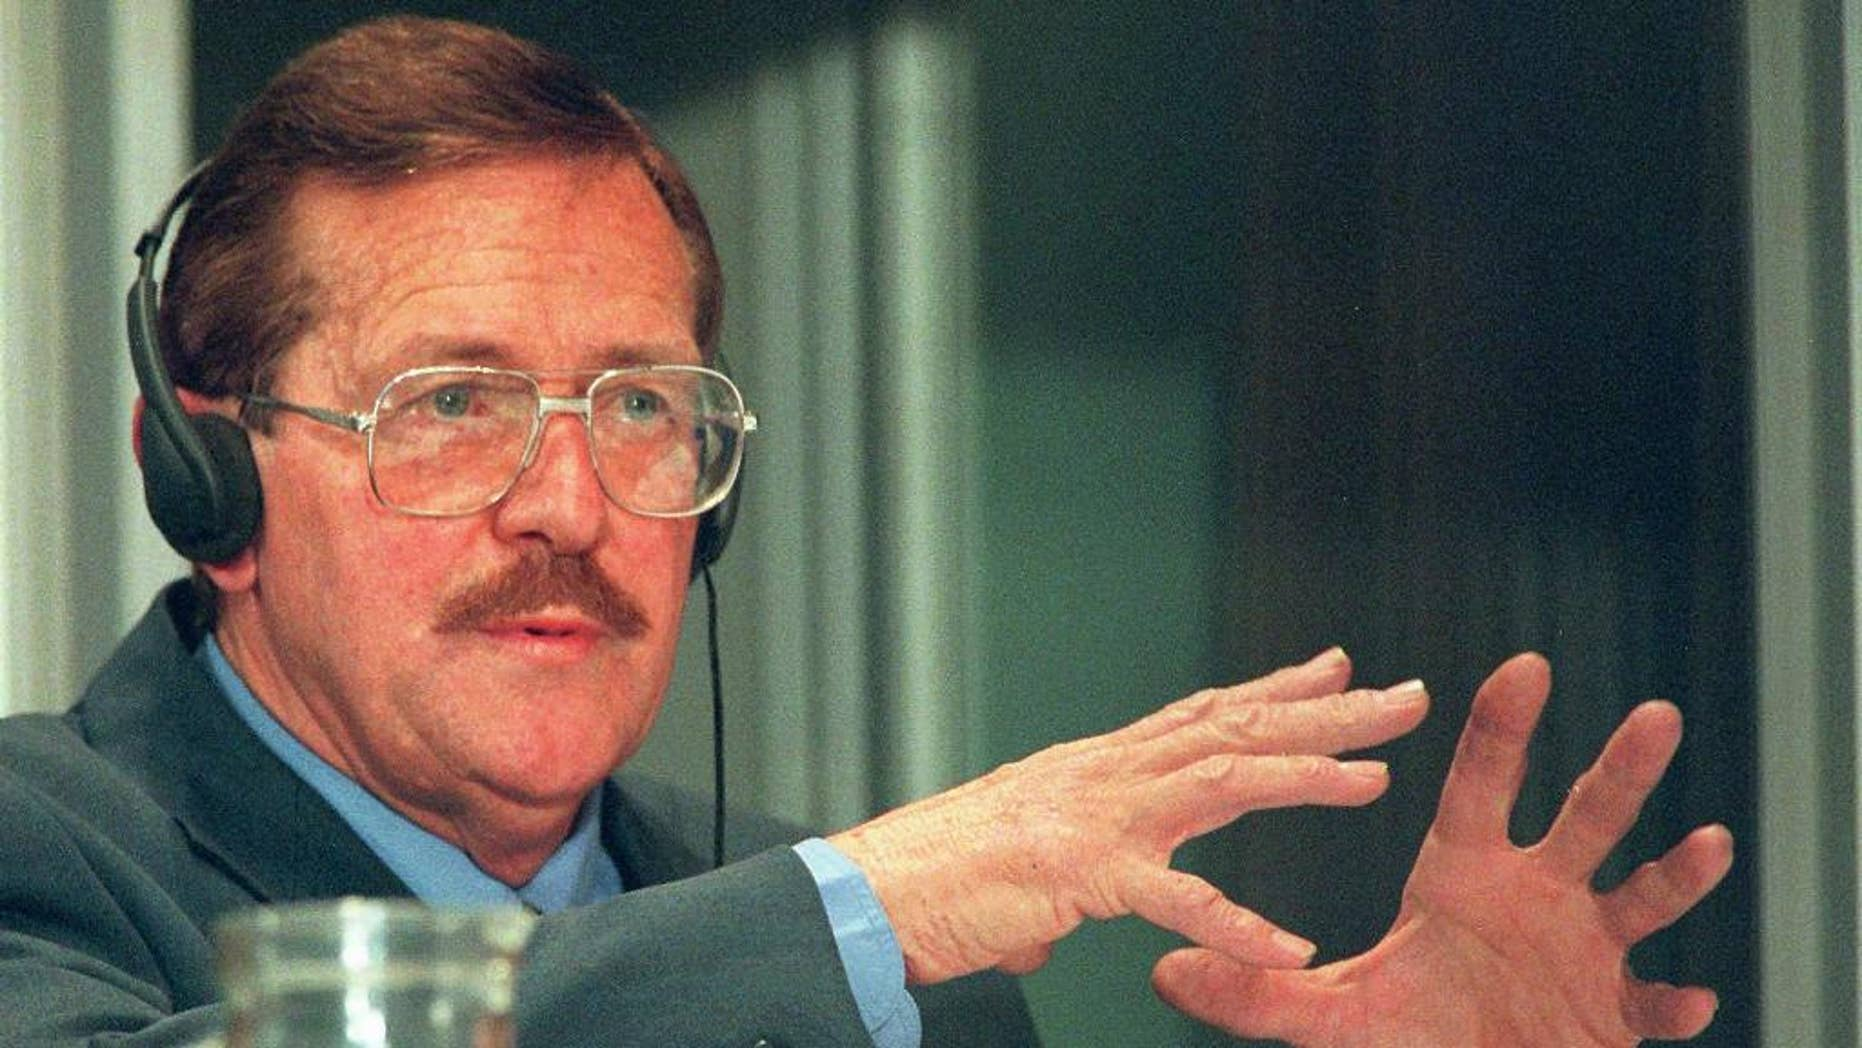 FILE - In this Tuesday Aug. 19, 1997 file photo, former Conservative Party politician Clive Derby-Lewis, makes a statement at an amnesty hearing in Pretoria, South Africa. On Friday, May 29, 2015 a judge granted parole to Derby-Lewis who was convicted for the 1993 assassination of Chris Hani, leader of the South African Communist Party and head of the African National Congress' military wing during apartheid, for which he received a life sentence. (AP Photo/Joao Silva-File)